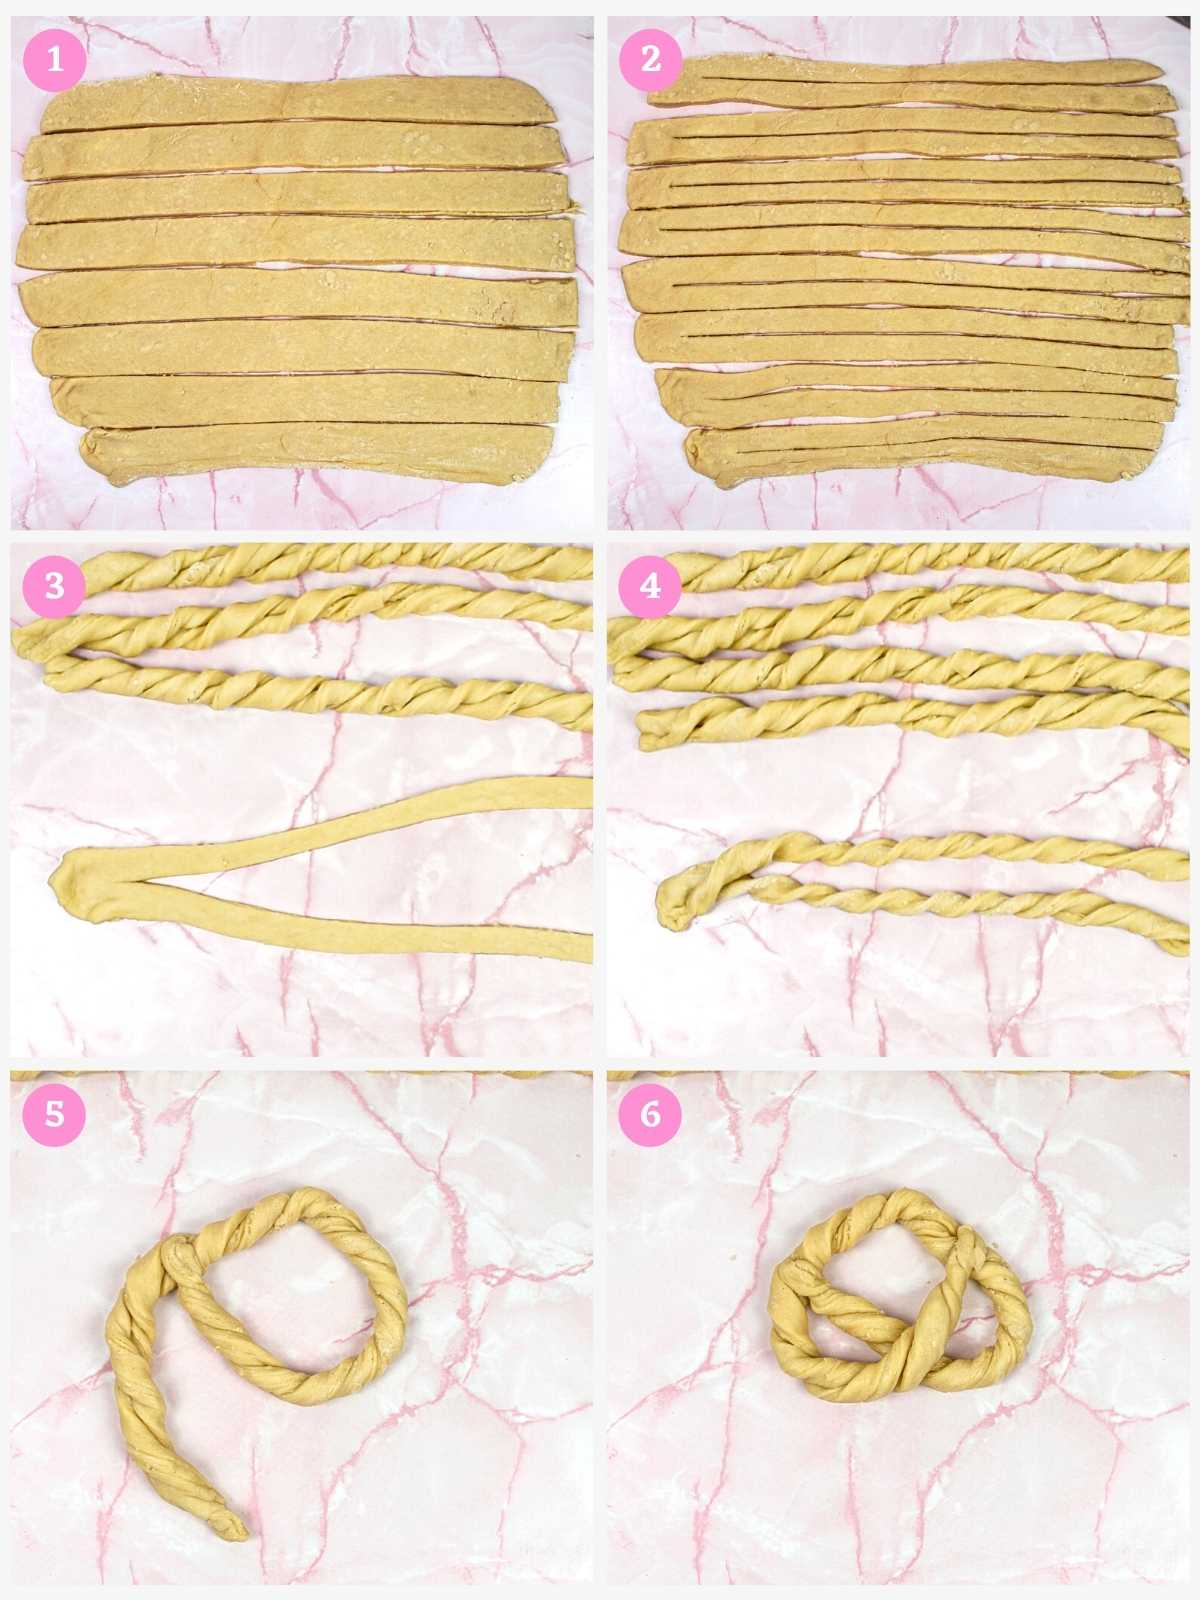 Collage of 6 images showing how to shape sweet pretzels